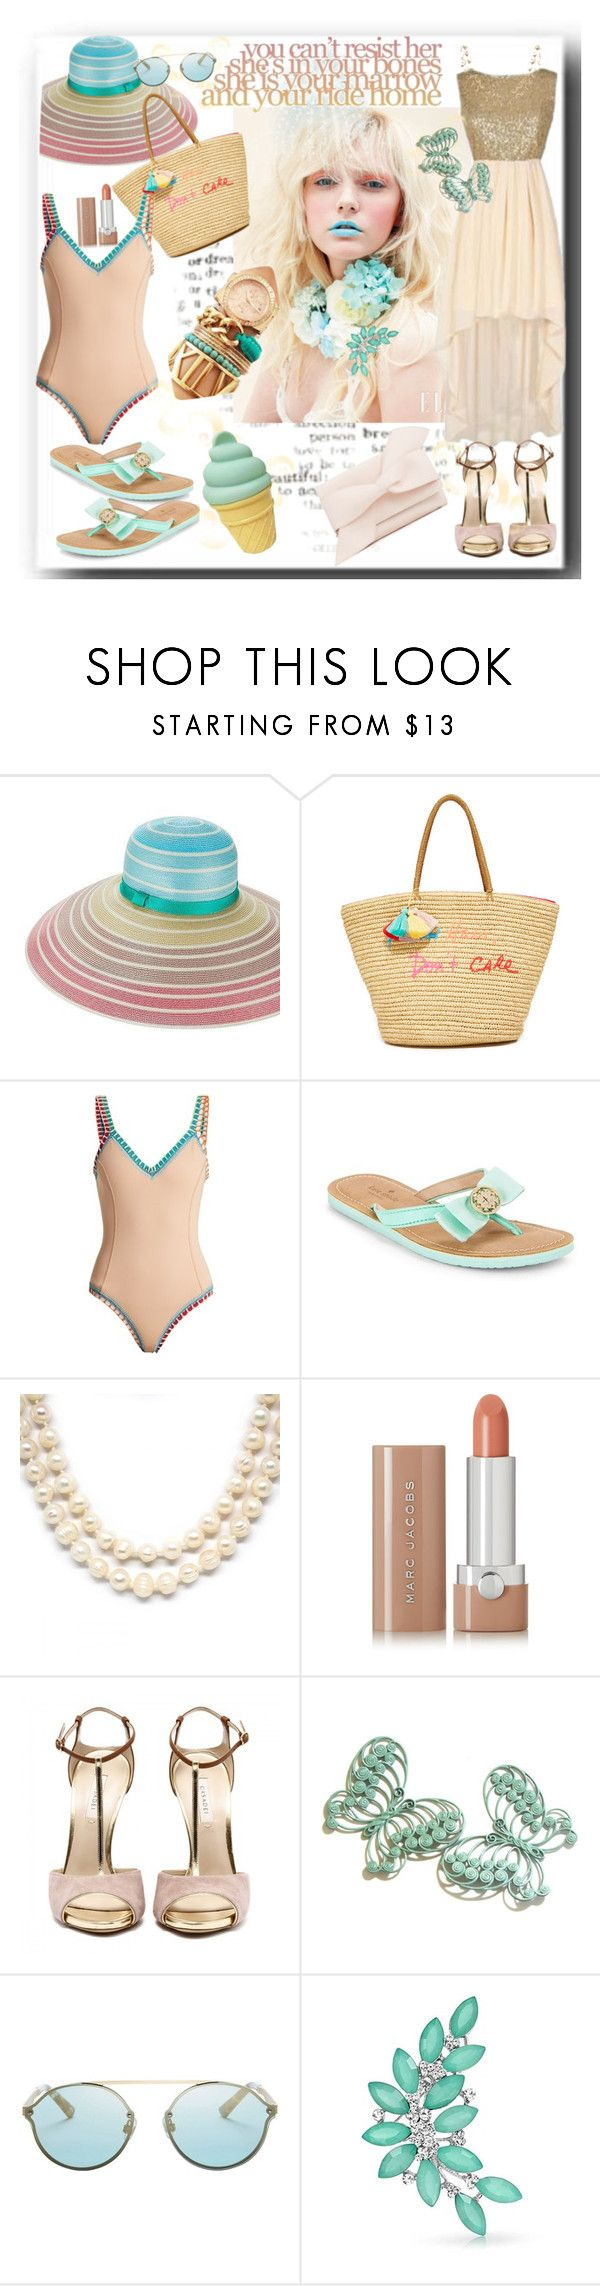 """""""Ready for the day!"""" by sherrysrosecottage-1 ❤ liked on Polyvore featuring Yazbukey, Missoni, Rebecca Minkoff, kiini, Kate Spade, Marc Jacobs, Web Sunglasses, Bling Jewelry and A Little Lovely Company"""